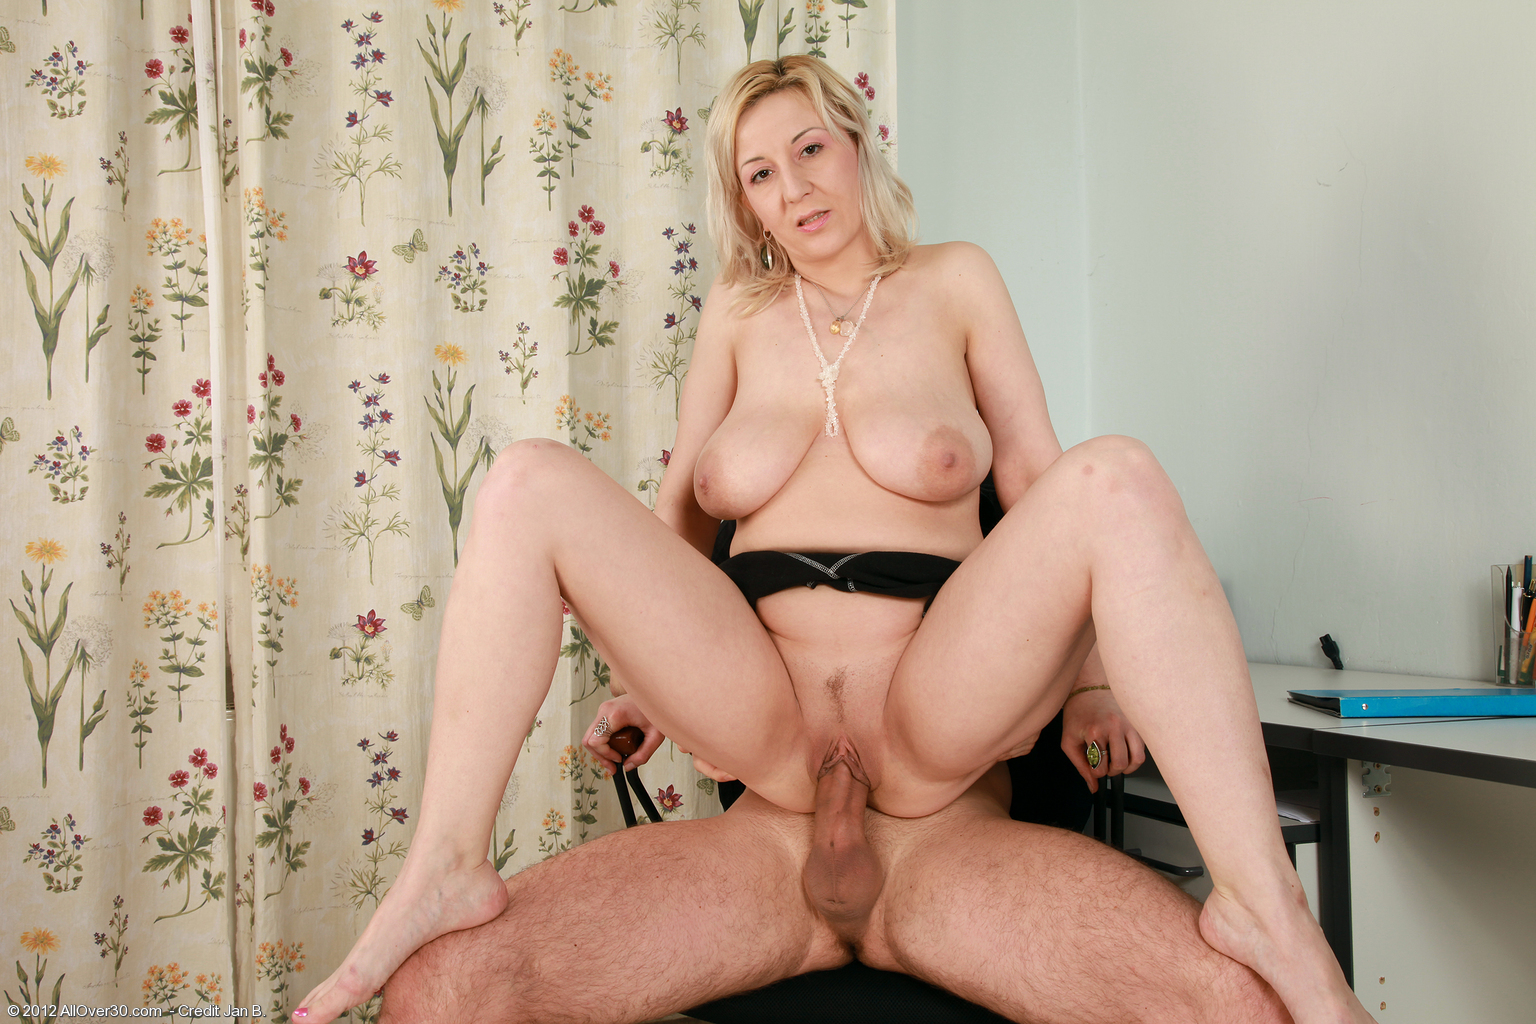 Free Mature Pictures Collection, Nude Moms Pictures, Hot Milf Sex Pics